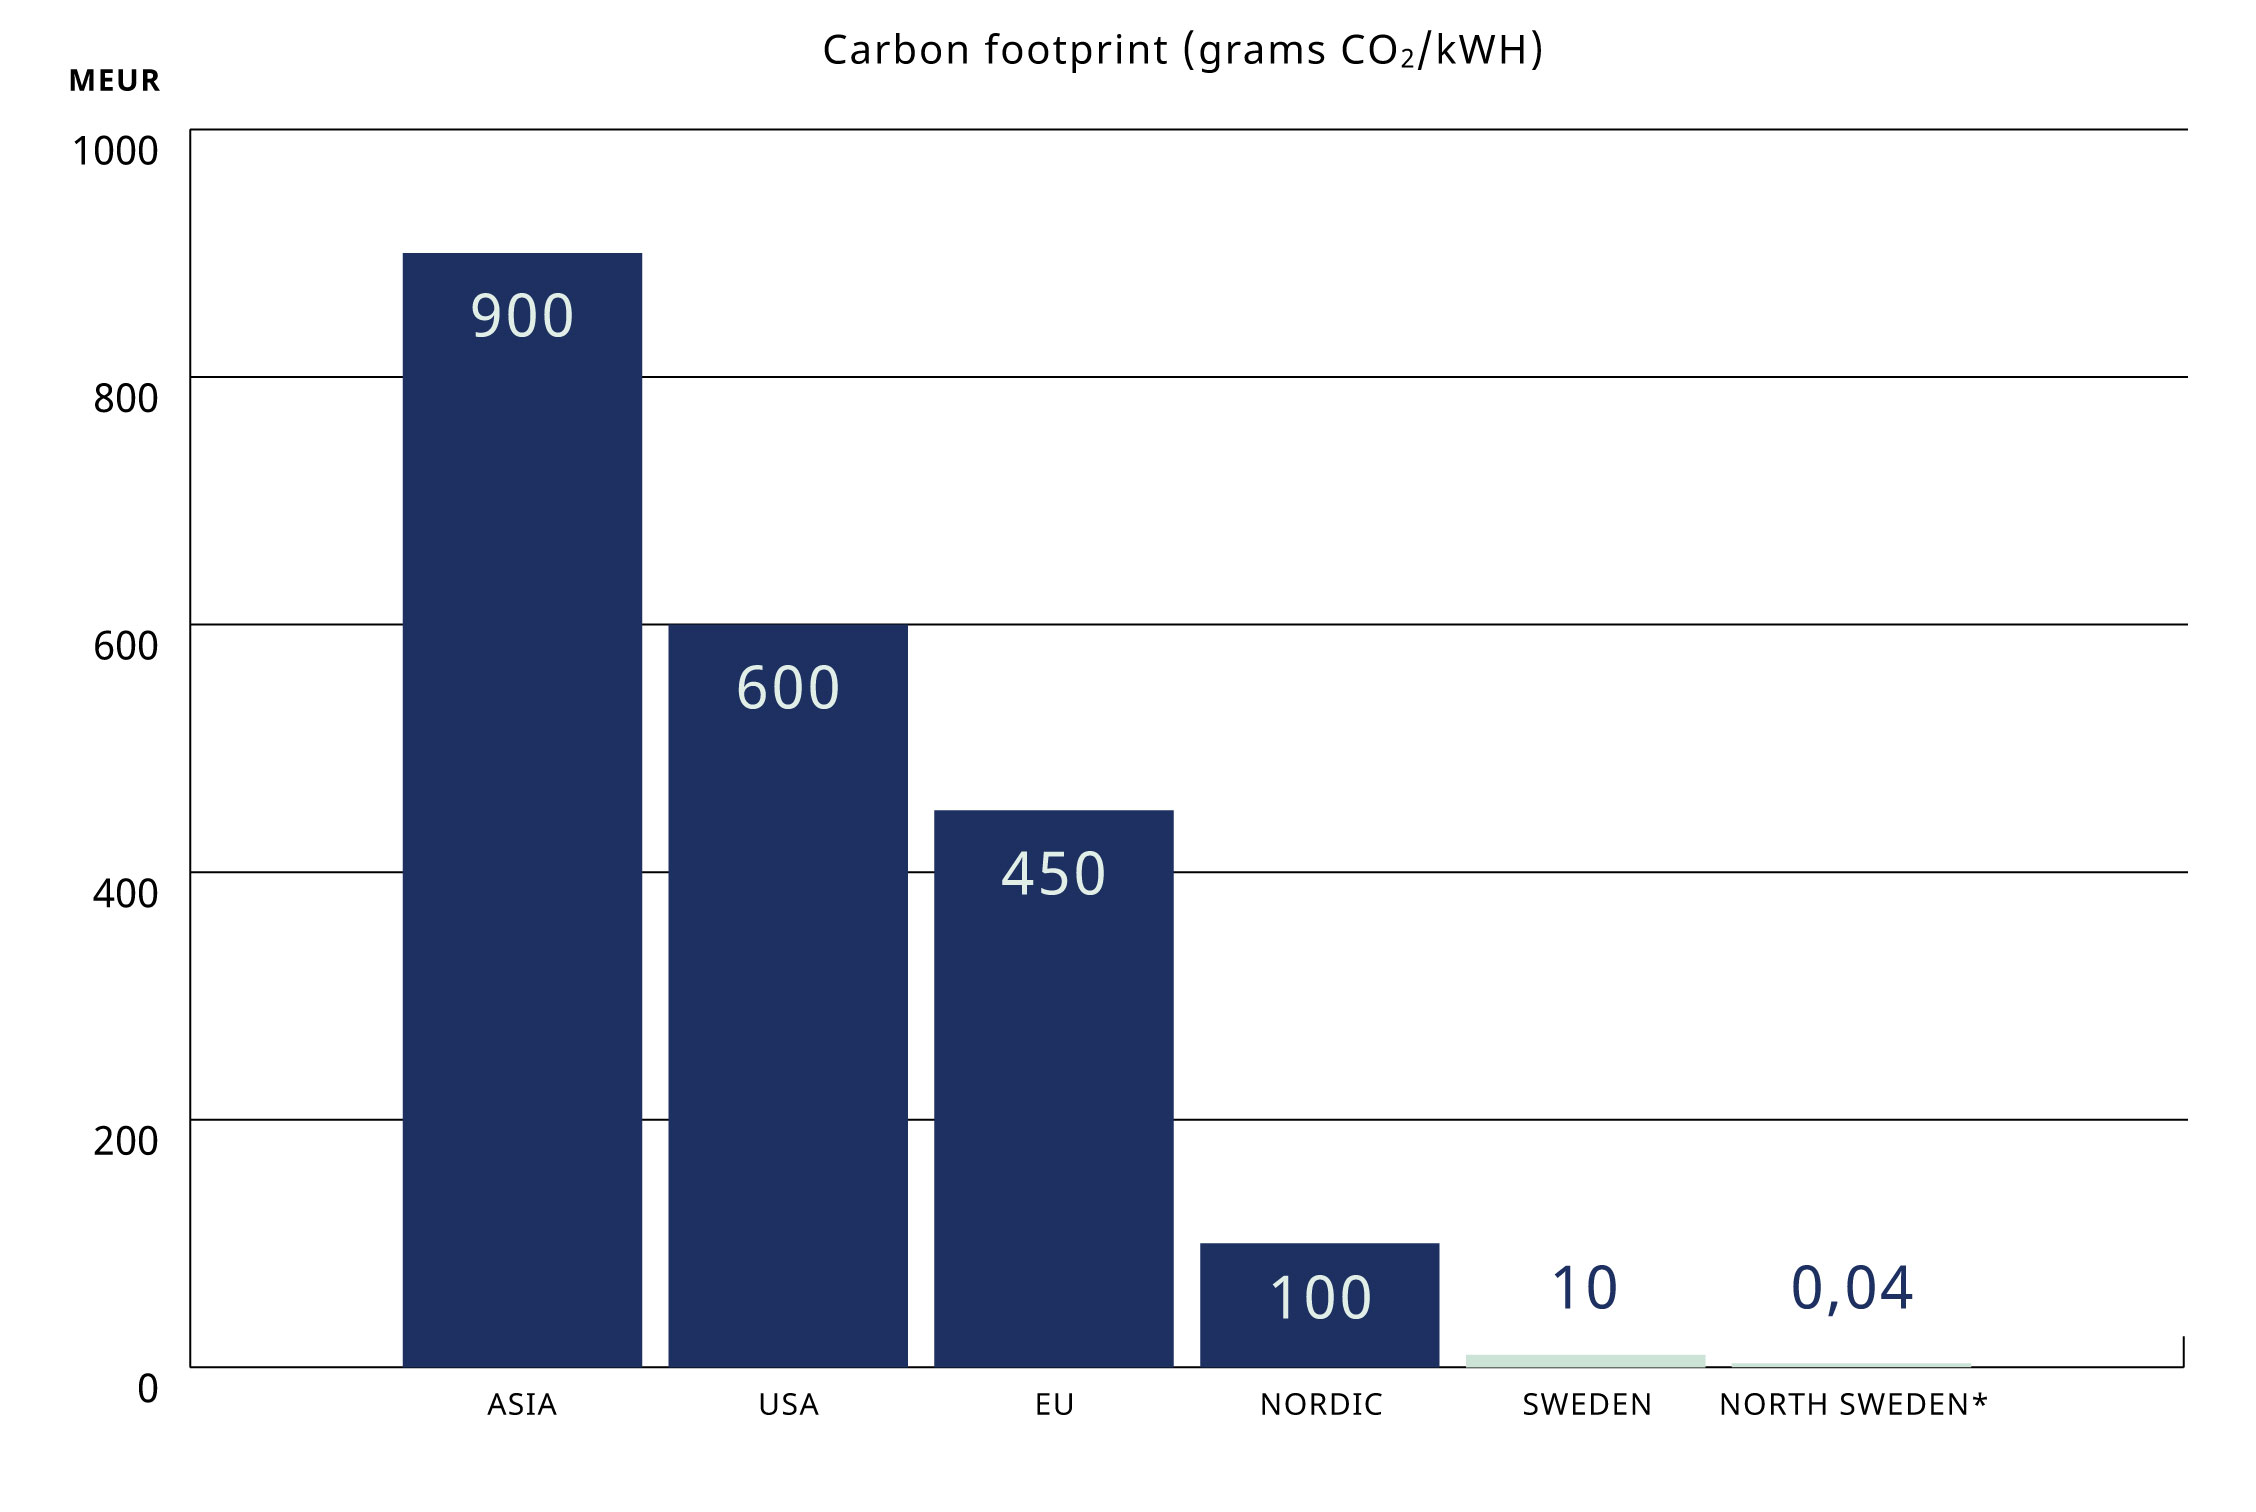 Carbon footprint in grams CO2 per kWh of power generation in 2014. </br>Source: European Environment Agency and Vattenfall.</br>*EPD Vattenfall Hydropower.